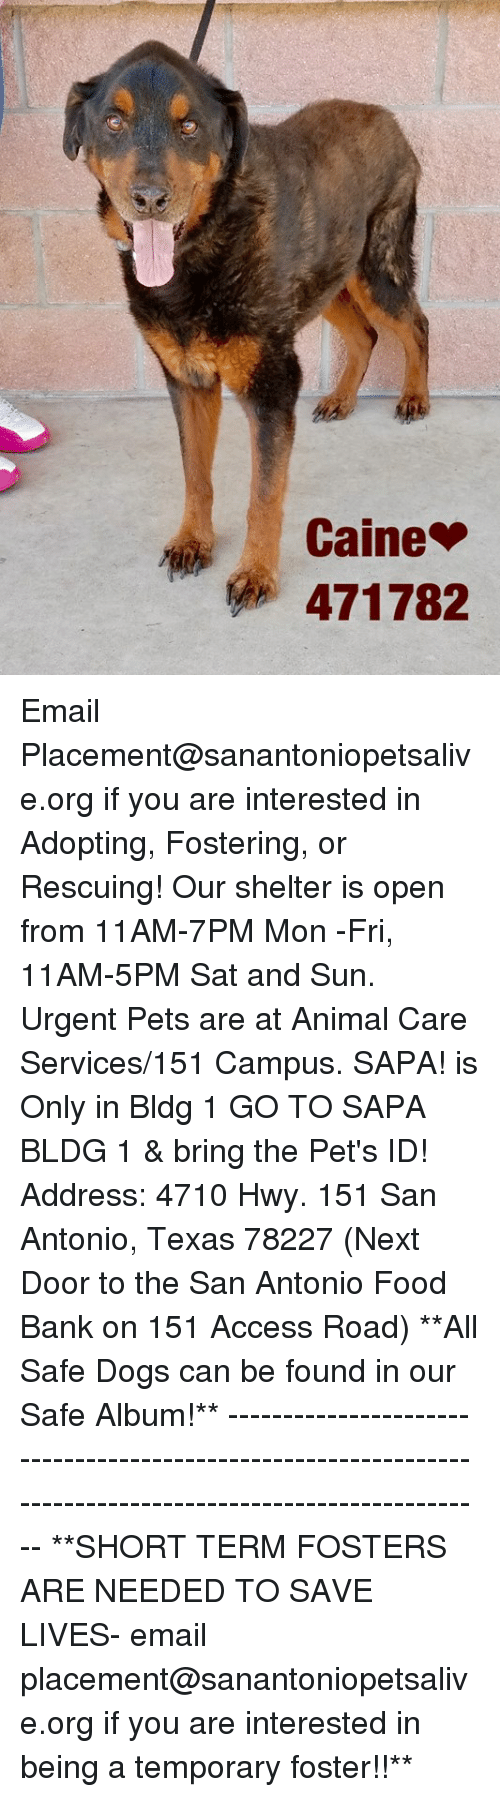 Dogs, Food, and Memes: Caine  471782 Email Placement@sanantoniopetsalive.org if you are interested in Adopting, Fostering, or Rescuing!  Our shelter is open from 11AM-7PM Mon -Fri, 11AM-5PM Sat and Sun.  Urgent Pets are at Animal Care Services/151 Campus. SAPA! is Only in Bldg 1 GO TO SAPA BLDG 1 & bring the Pet's ID! Address: 4710 Hwy. 151 San Antonio, Texas 78227 (Next Door to the San Antonio Food Bank on 151 Access Road)  **All Safe Dogs can be found in our Safe Album!** ---------------------------------------------------------------------------------------------------------- **SHORT TERM FOSTERS ARE NEEDED TO SAVE LIVES- email placement@sanantoniopetsalive.org if you are interested in being a temporary foster!!**